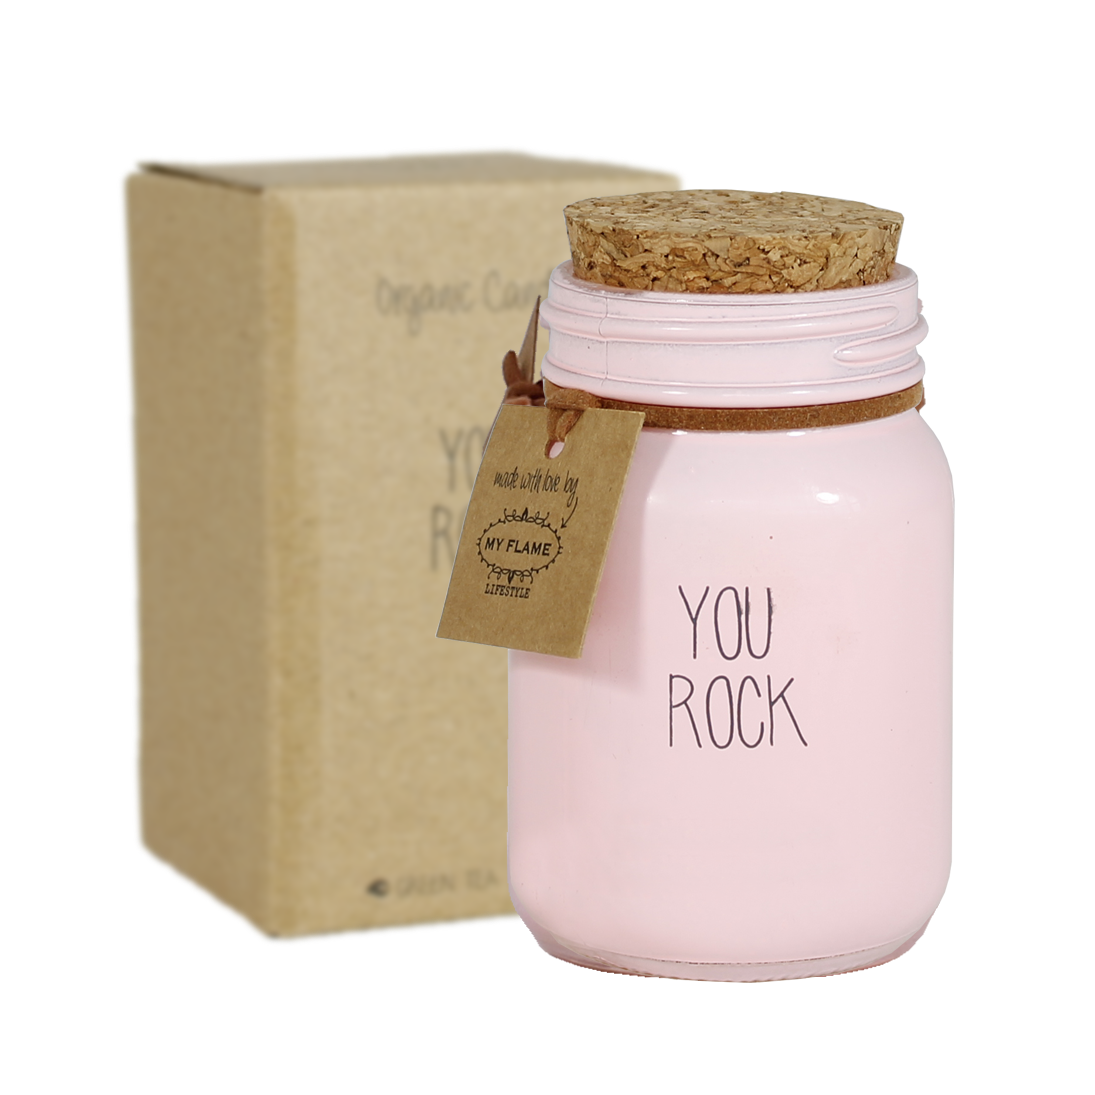 My Flame Lifestyle SOY CANDLE - YOU ROCK - SCENT: GREEN TEA TIME